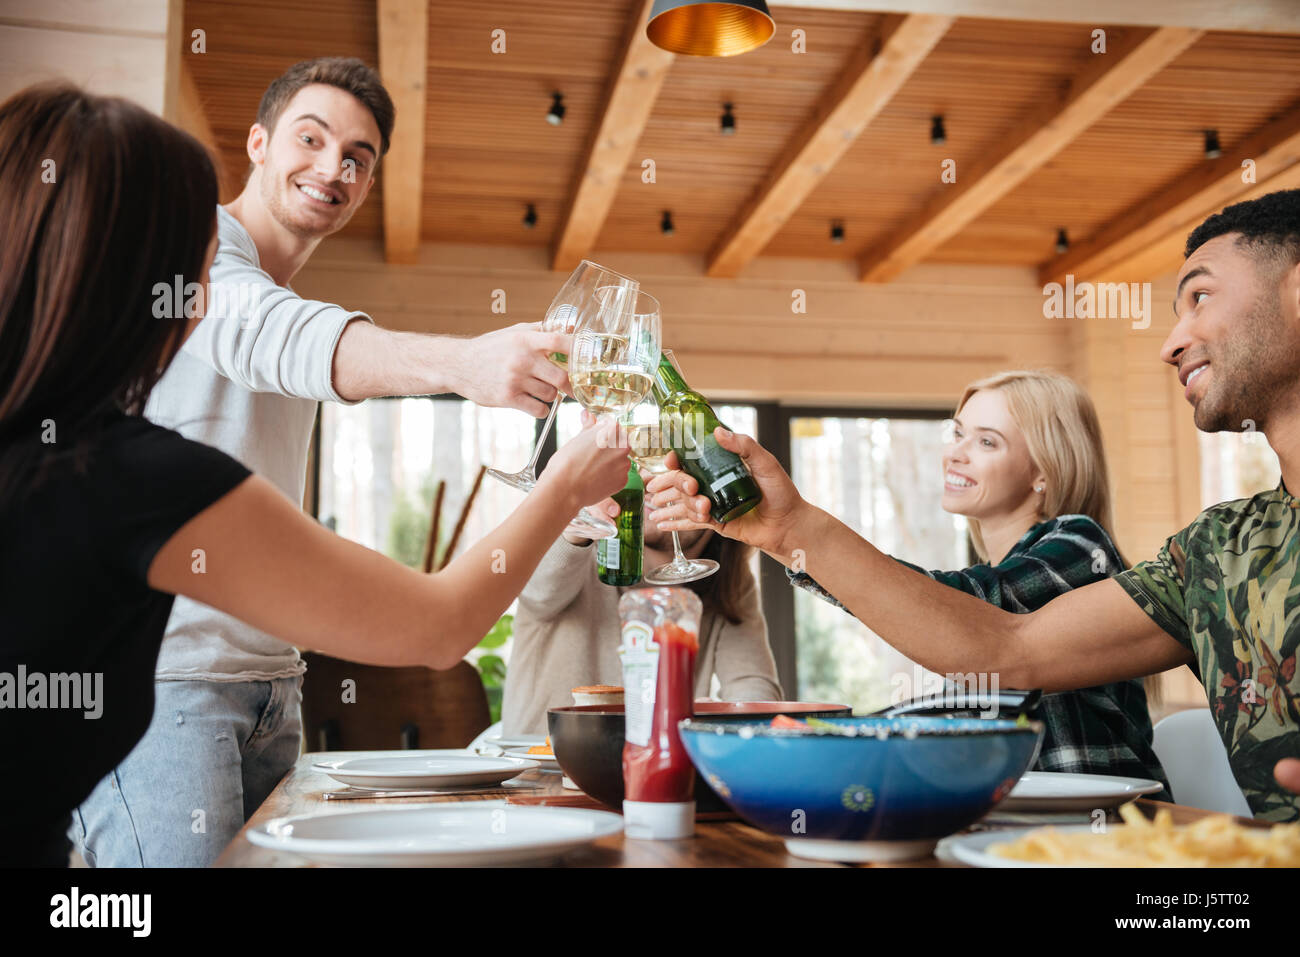 Multiethnic group of happy young people clinking glasses and celebrating at the table - Stock Image